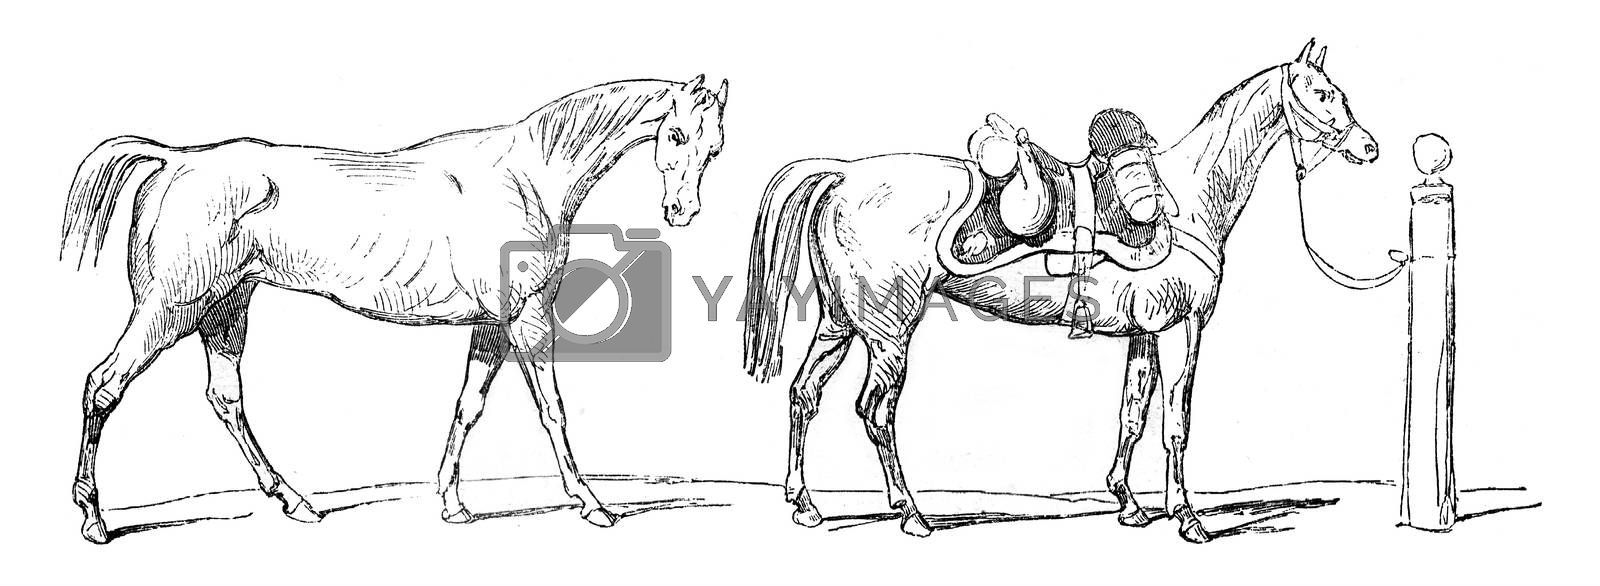 Horse Warmblood foreign cavalry, vintage engraved illustration. Magasin Pittoresque 1845.